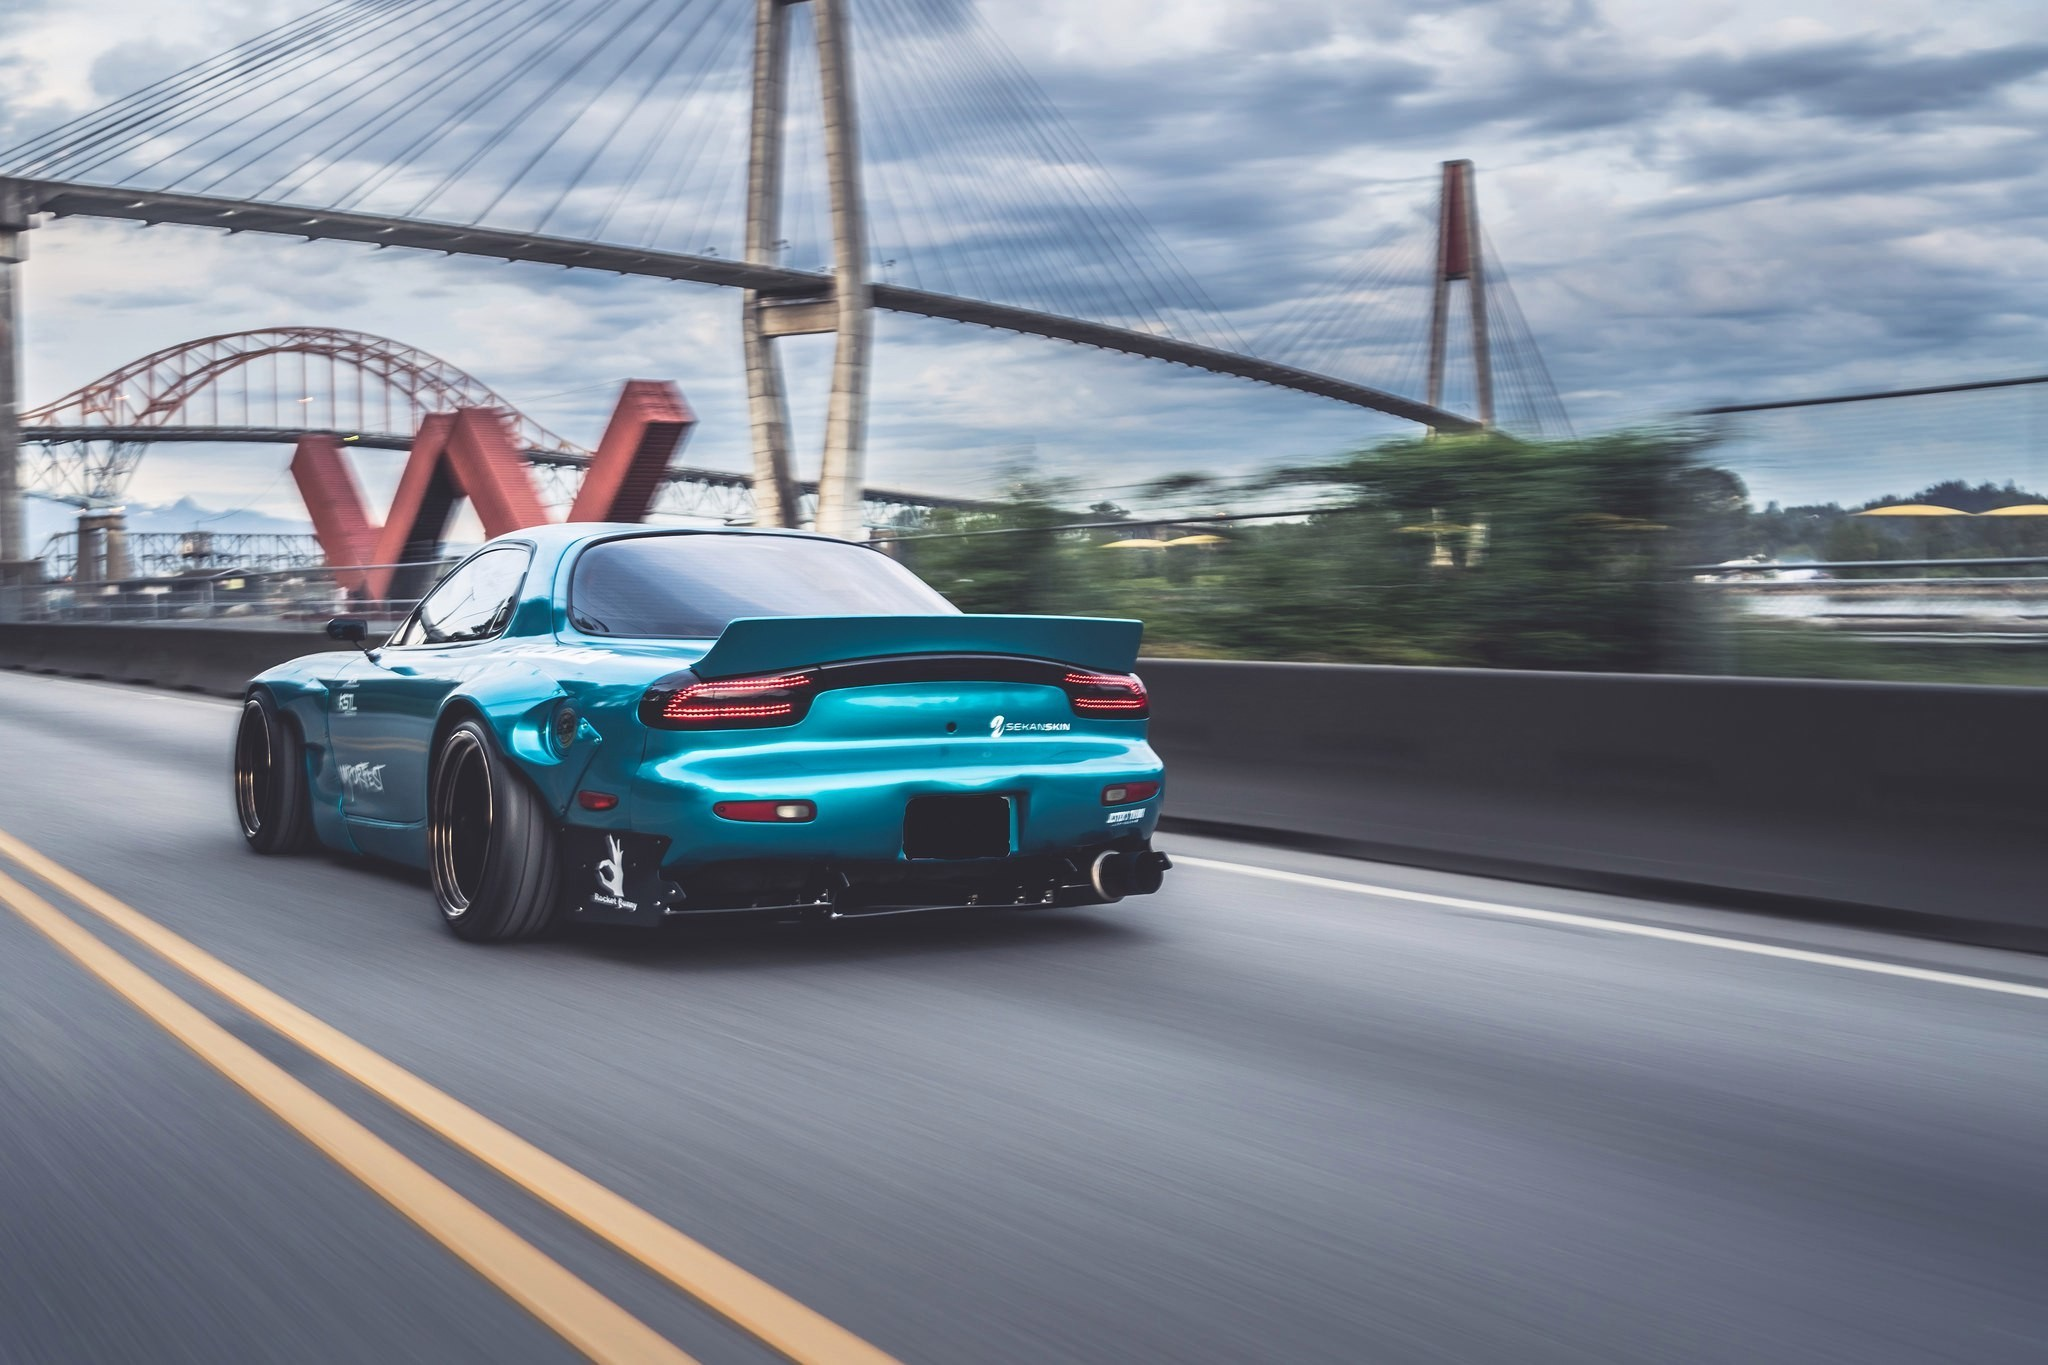 Res: 2048x1365, sports car, Mazda RX 7, Mazda, Blue cars, Bridge, Rocket Bunny Wallpapers  HD / Desktop and Mobile Backgrounds